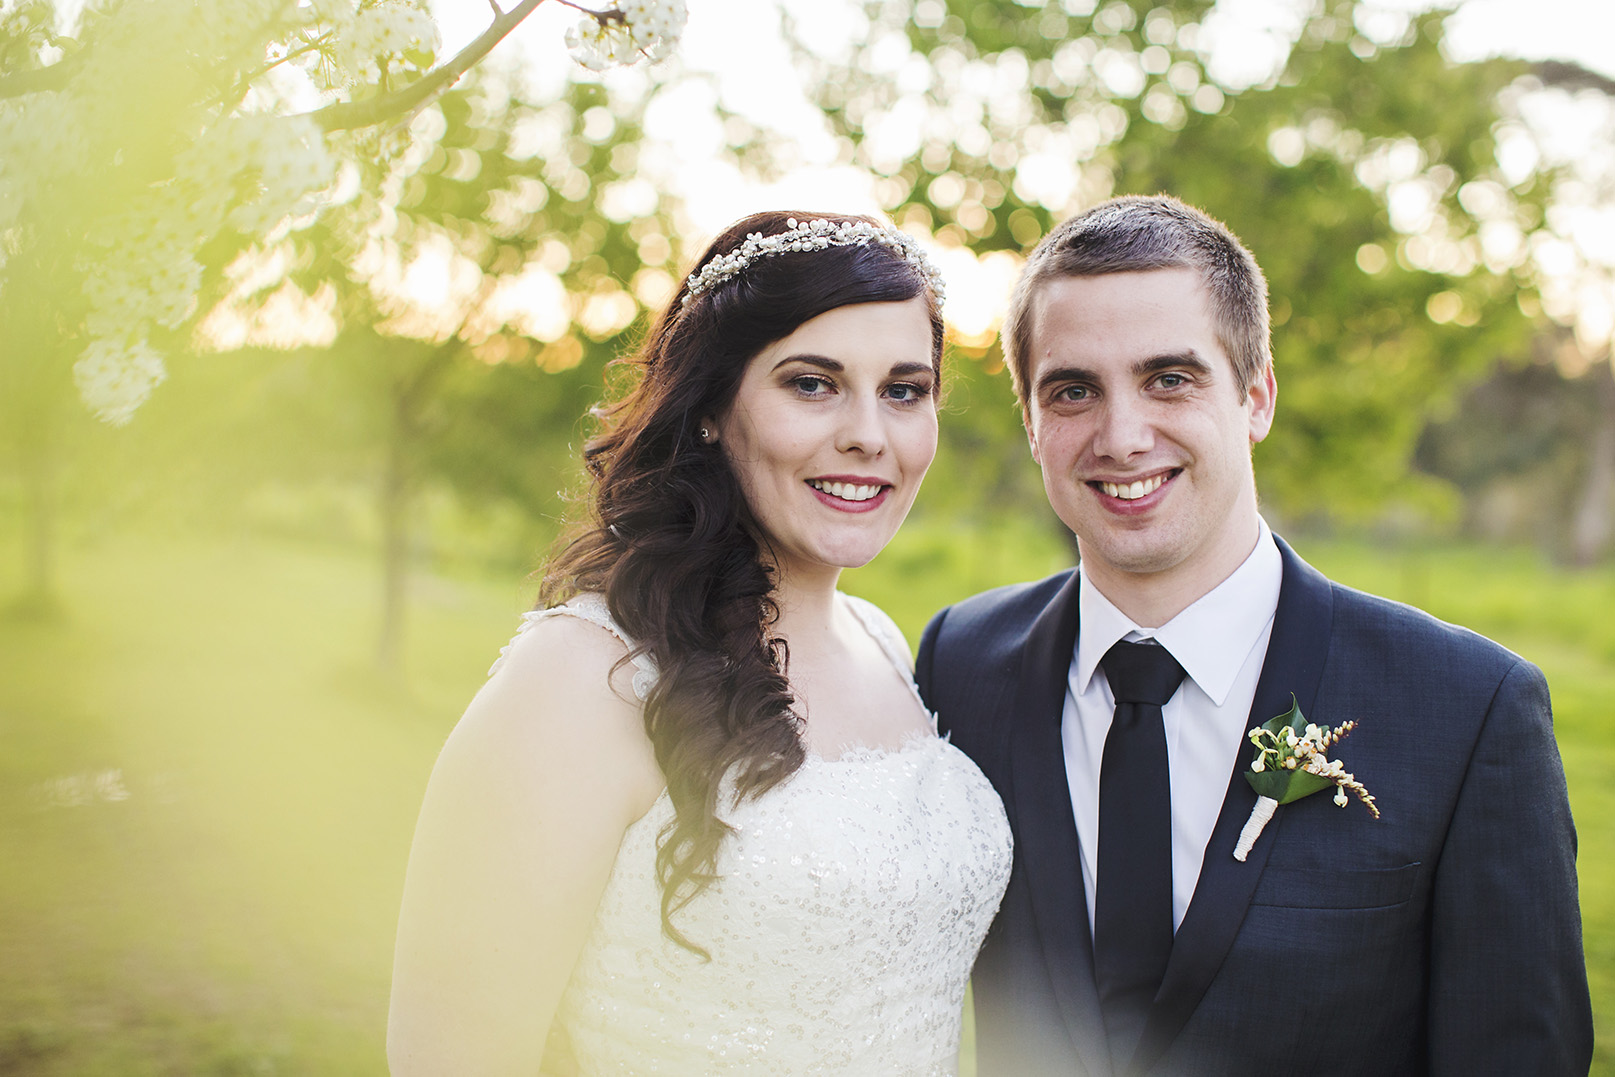 Gorgeous Al Ru Farm Wedding 64.jpg